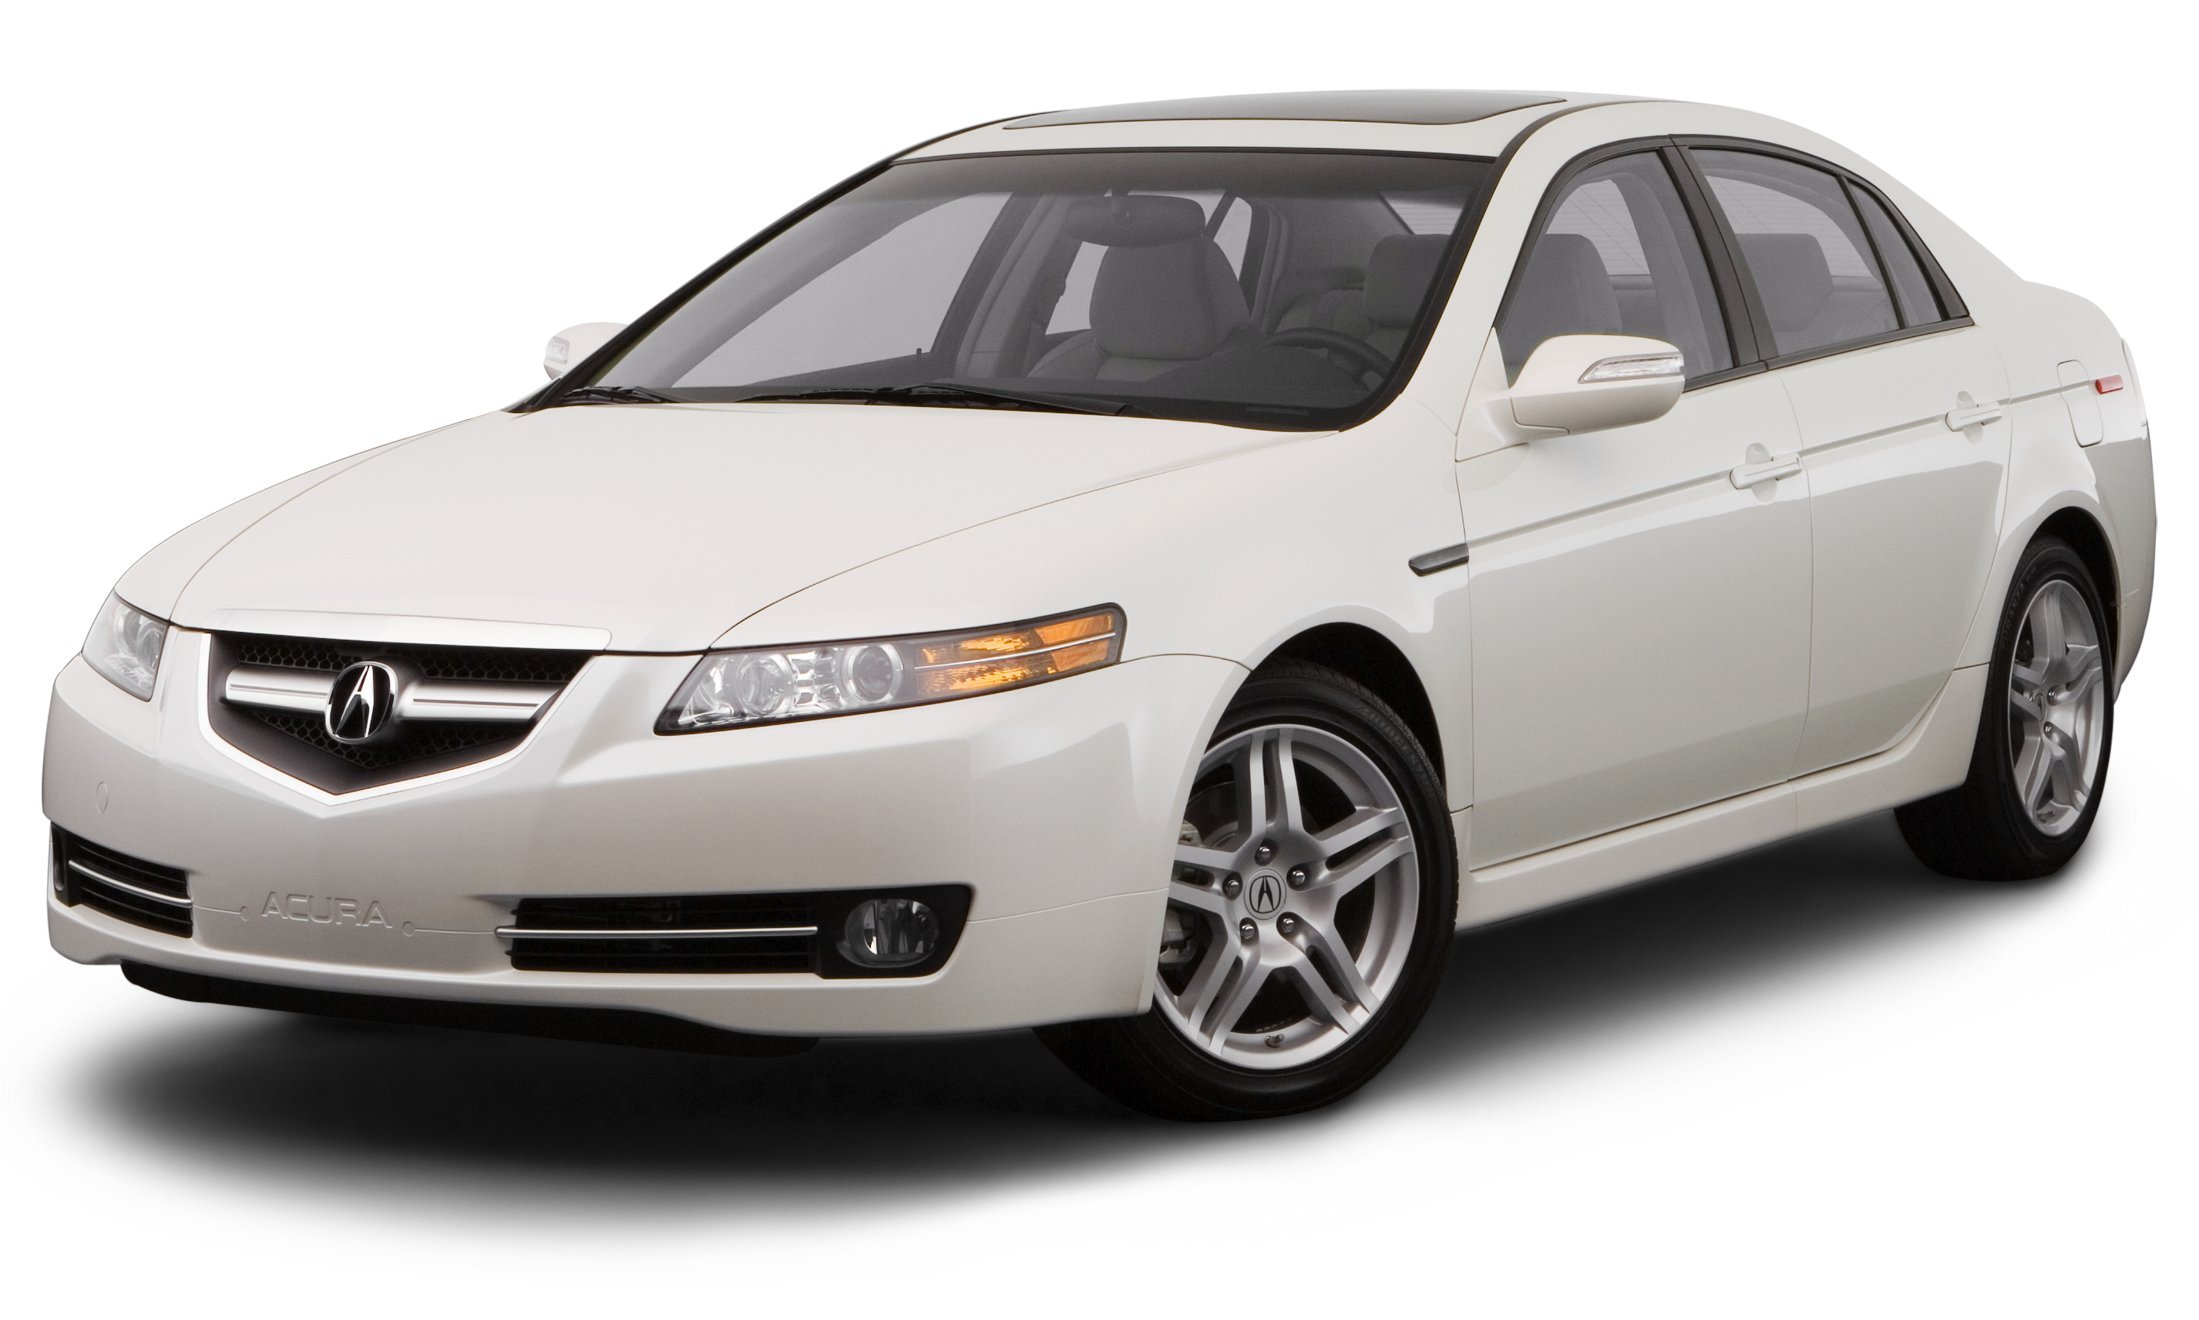 Amazon 2008 Acura TL Reviews and Specs Vehicles